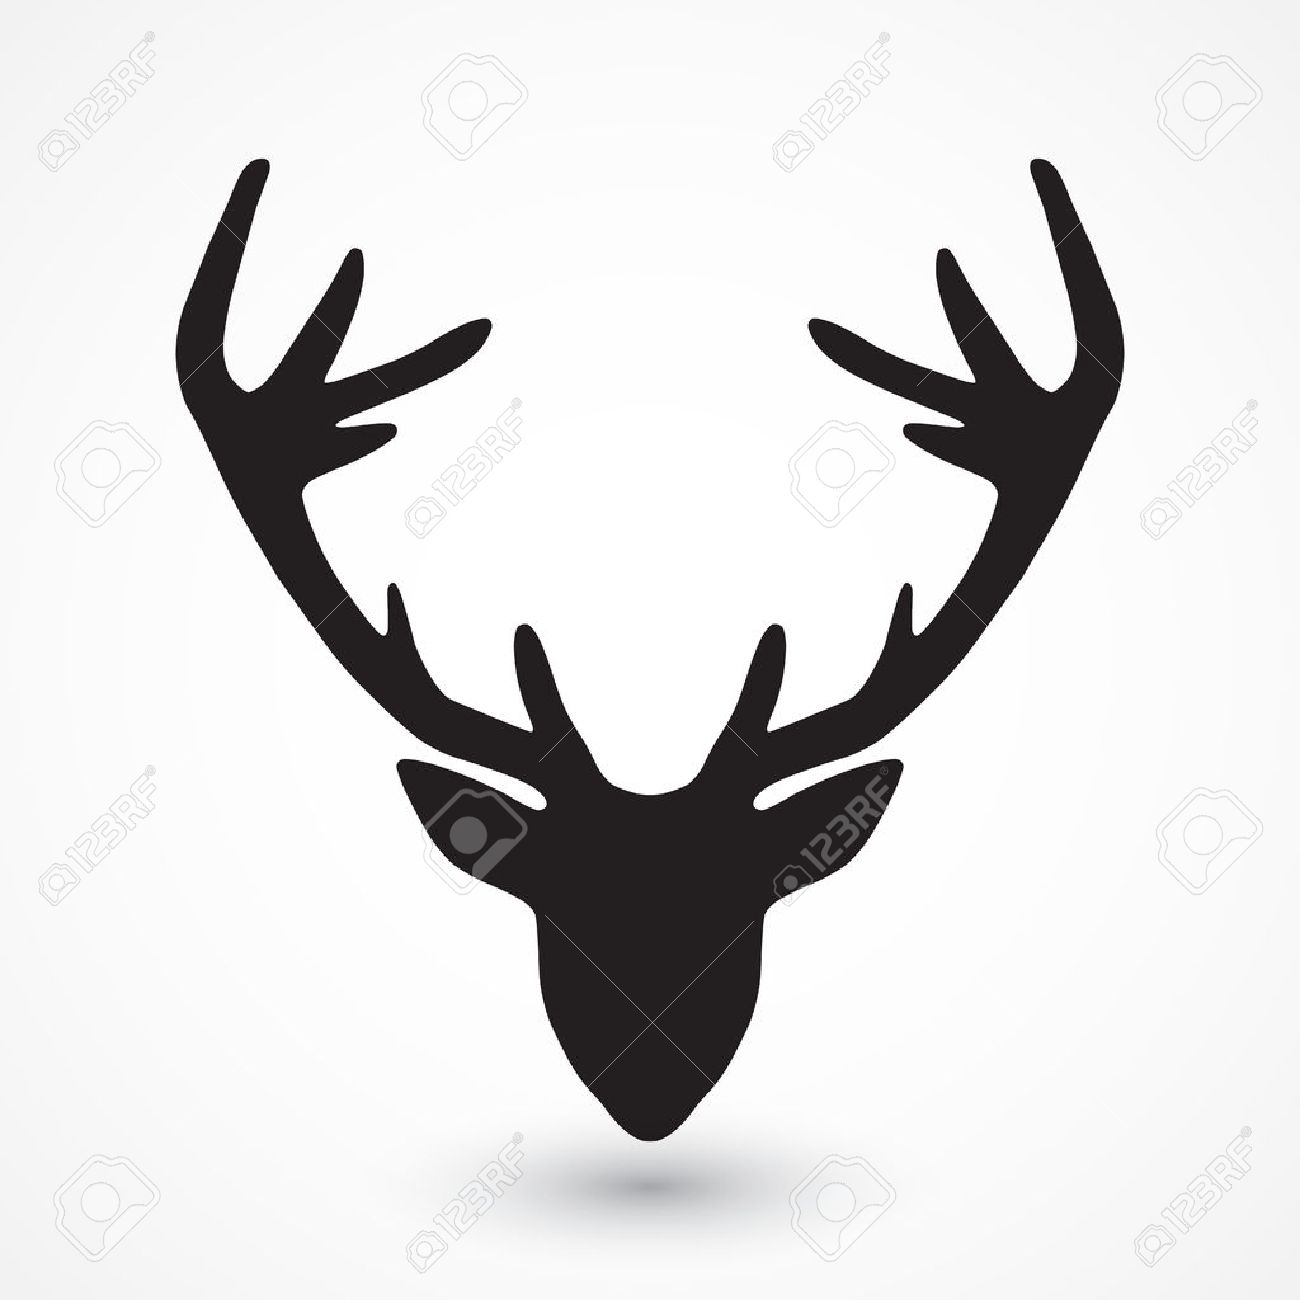 1300x1300 Deer Head Silhouette Royalty Free Cliparts Vectors And Stock Fair